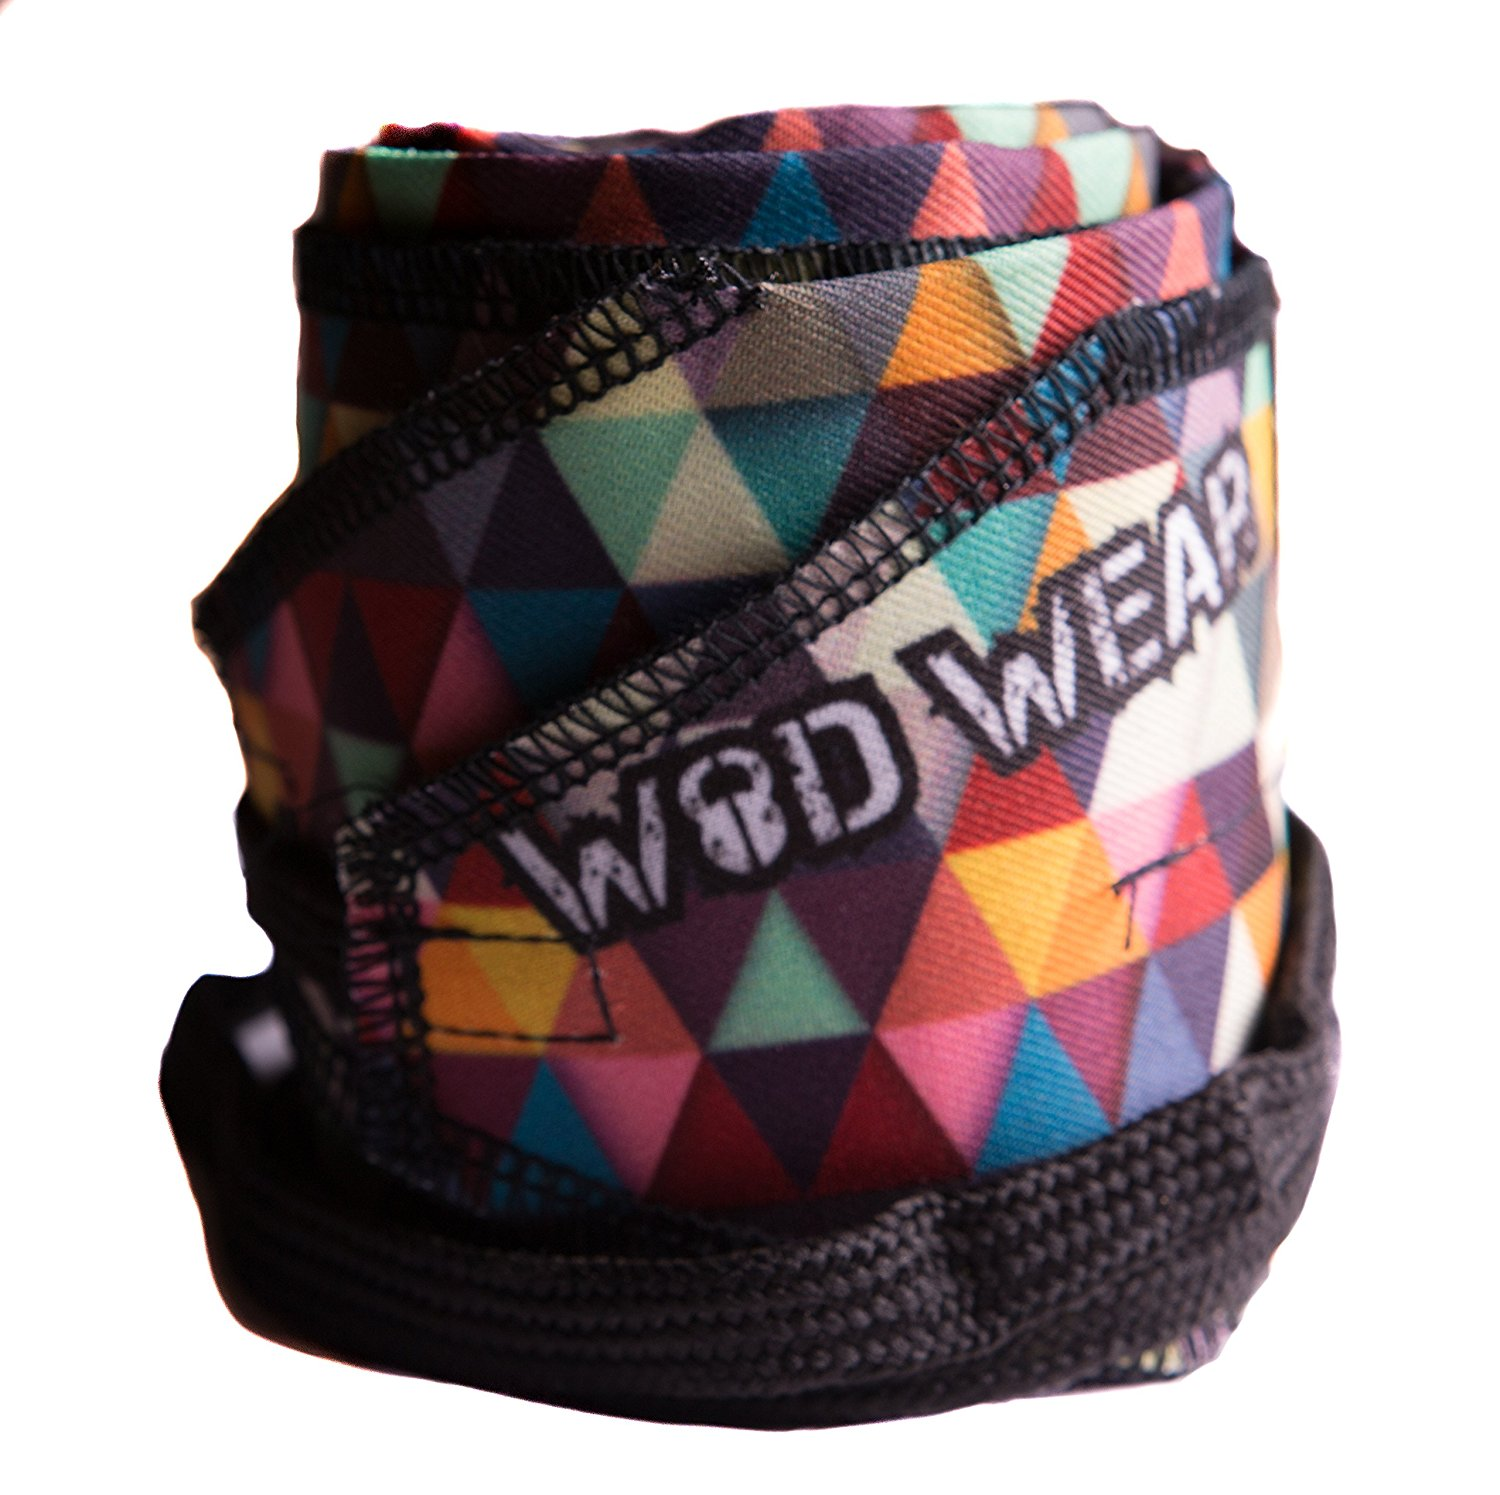 2. WOD Wear Wrist Wraps